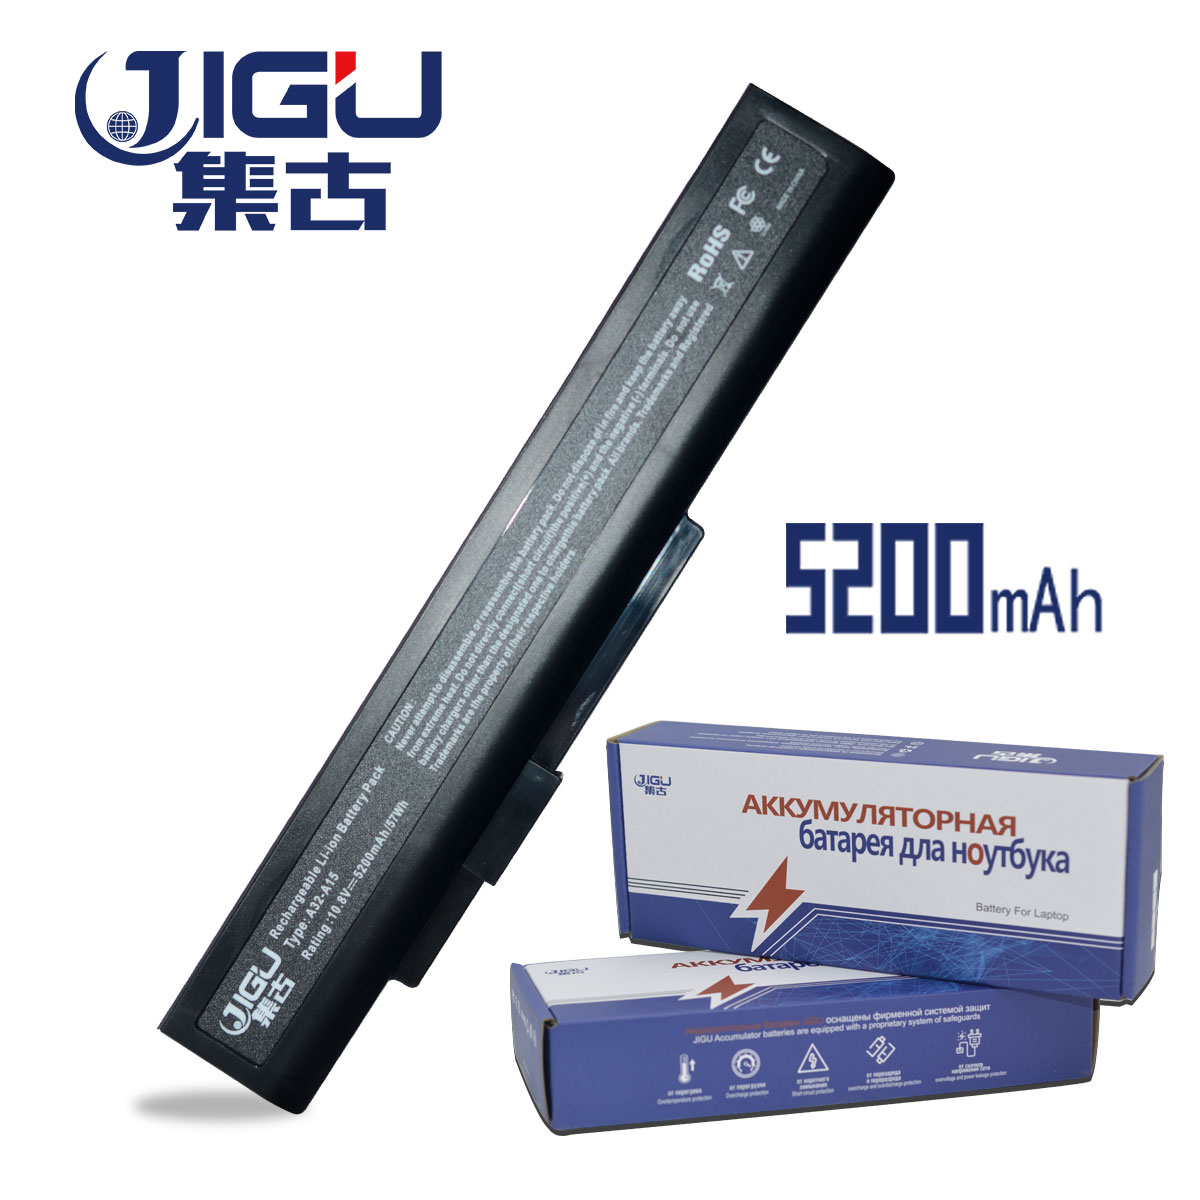 JIGU NEW Laptop Battery A32-A15 40036064 for msi A6400 CX640(MS-16Y1) CR640 Gigabyte Q2532N DNS 142750 153734 157296 new and original laptop baterry for dns 123871 gwbp05 921500013 11 25v 2800mah